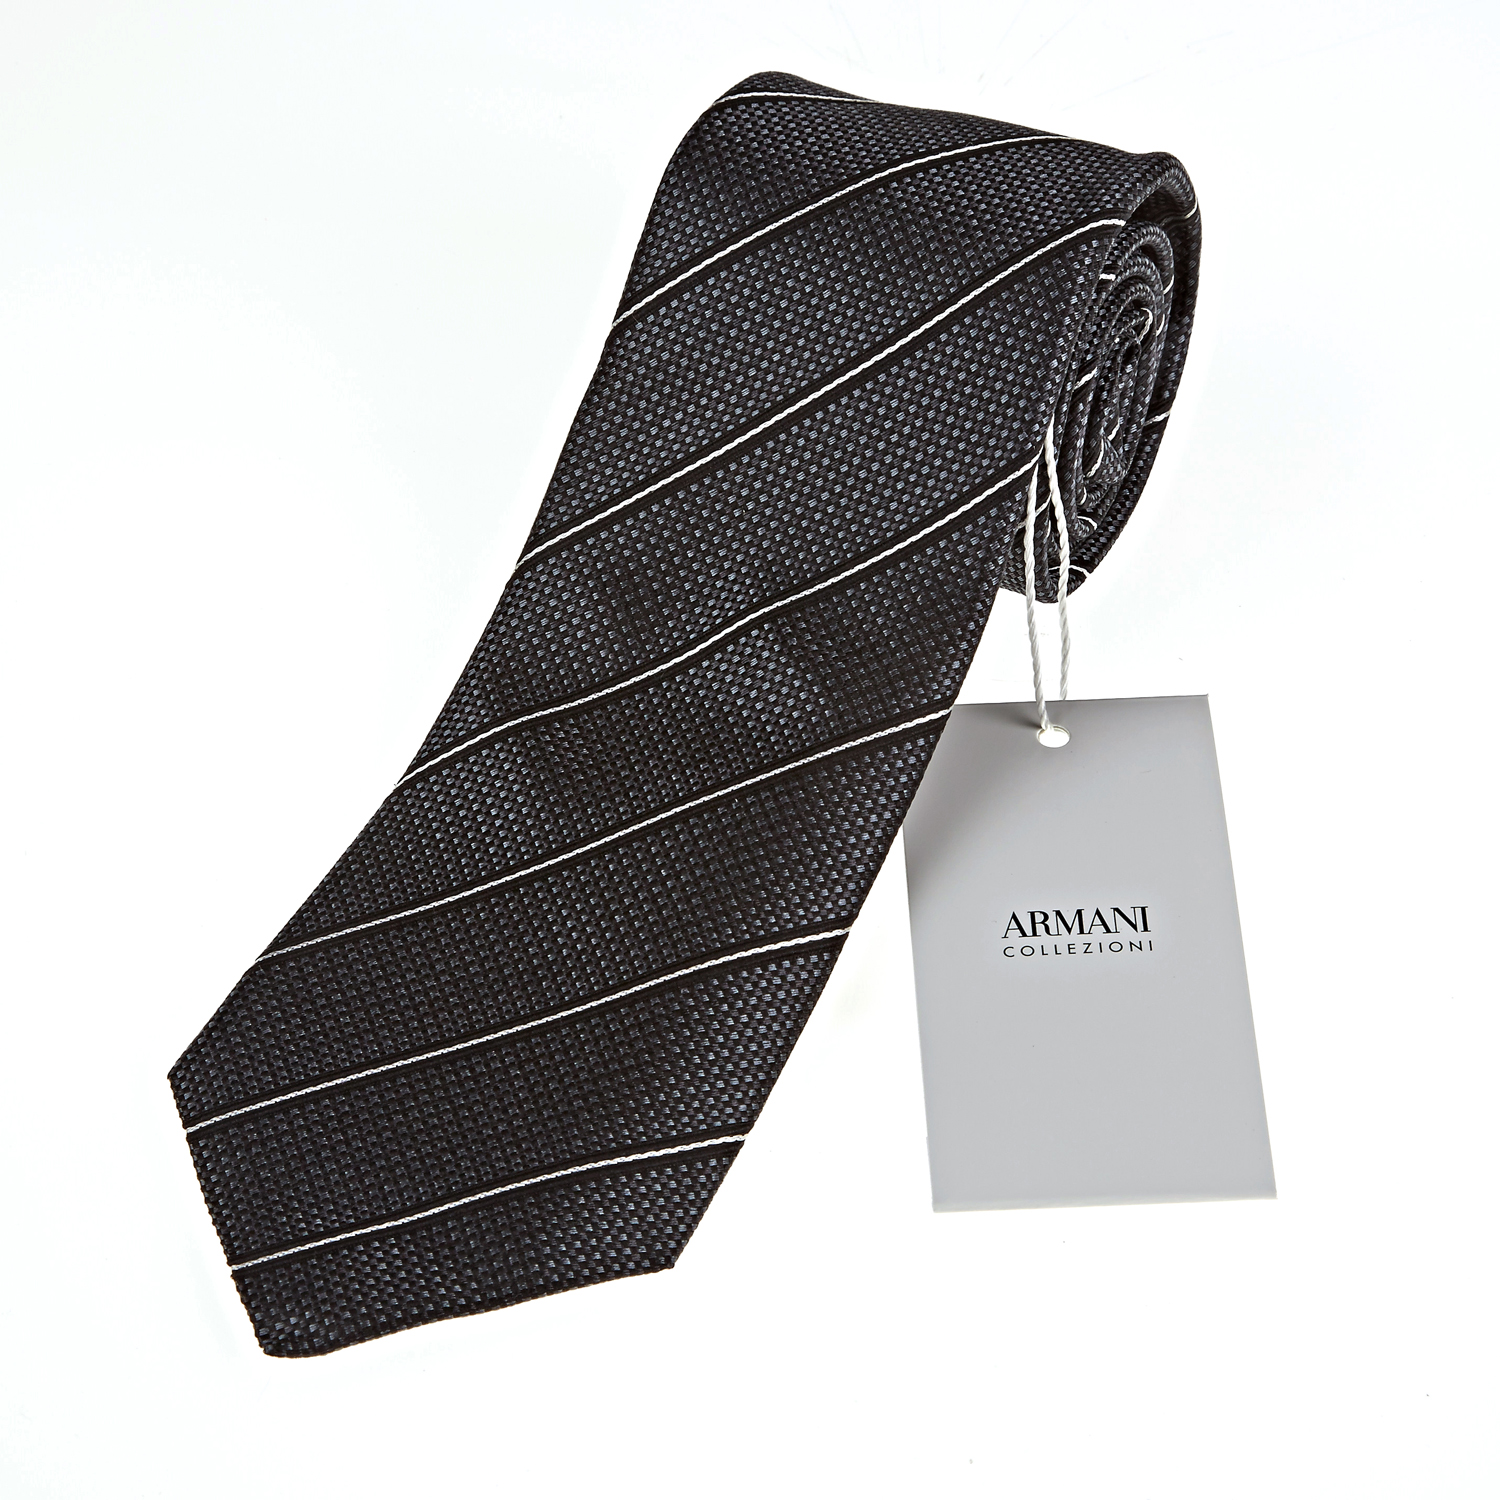 8Pcs/Lot % Silk Mens Tie Classic Jacquard Woven Necktie Formal Wedding Ties The ties heavily weighted and elastic and therefore easily made the knot. Material:Silk Polyester.